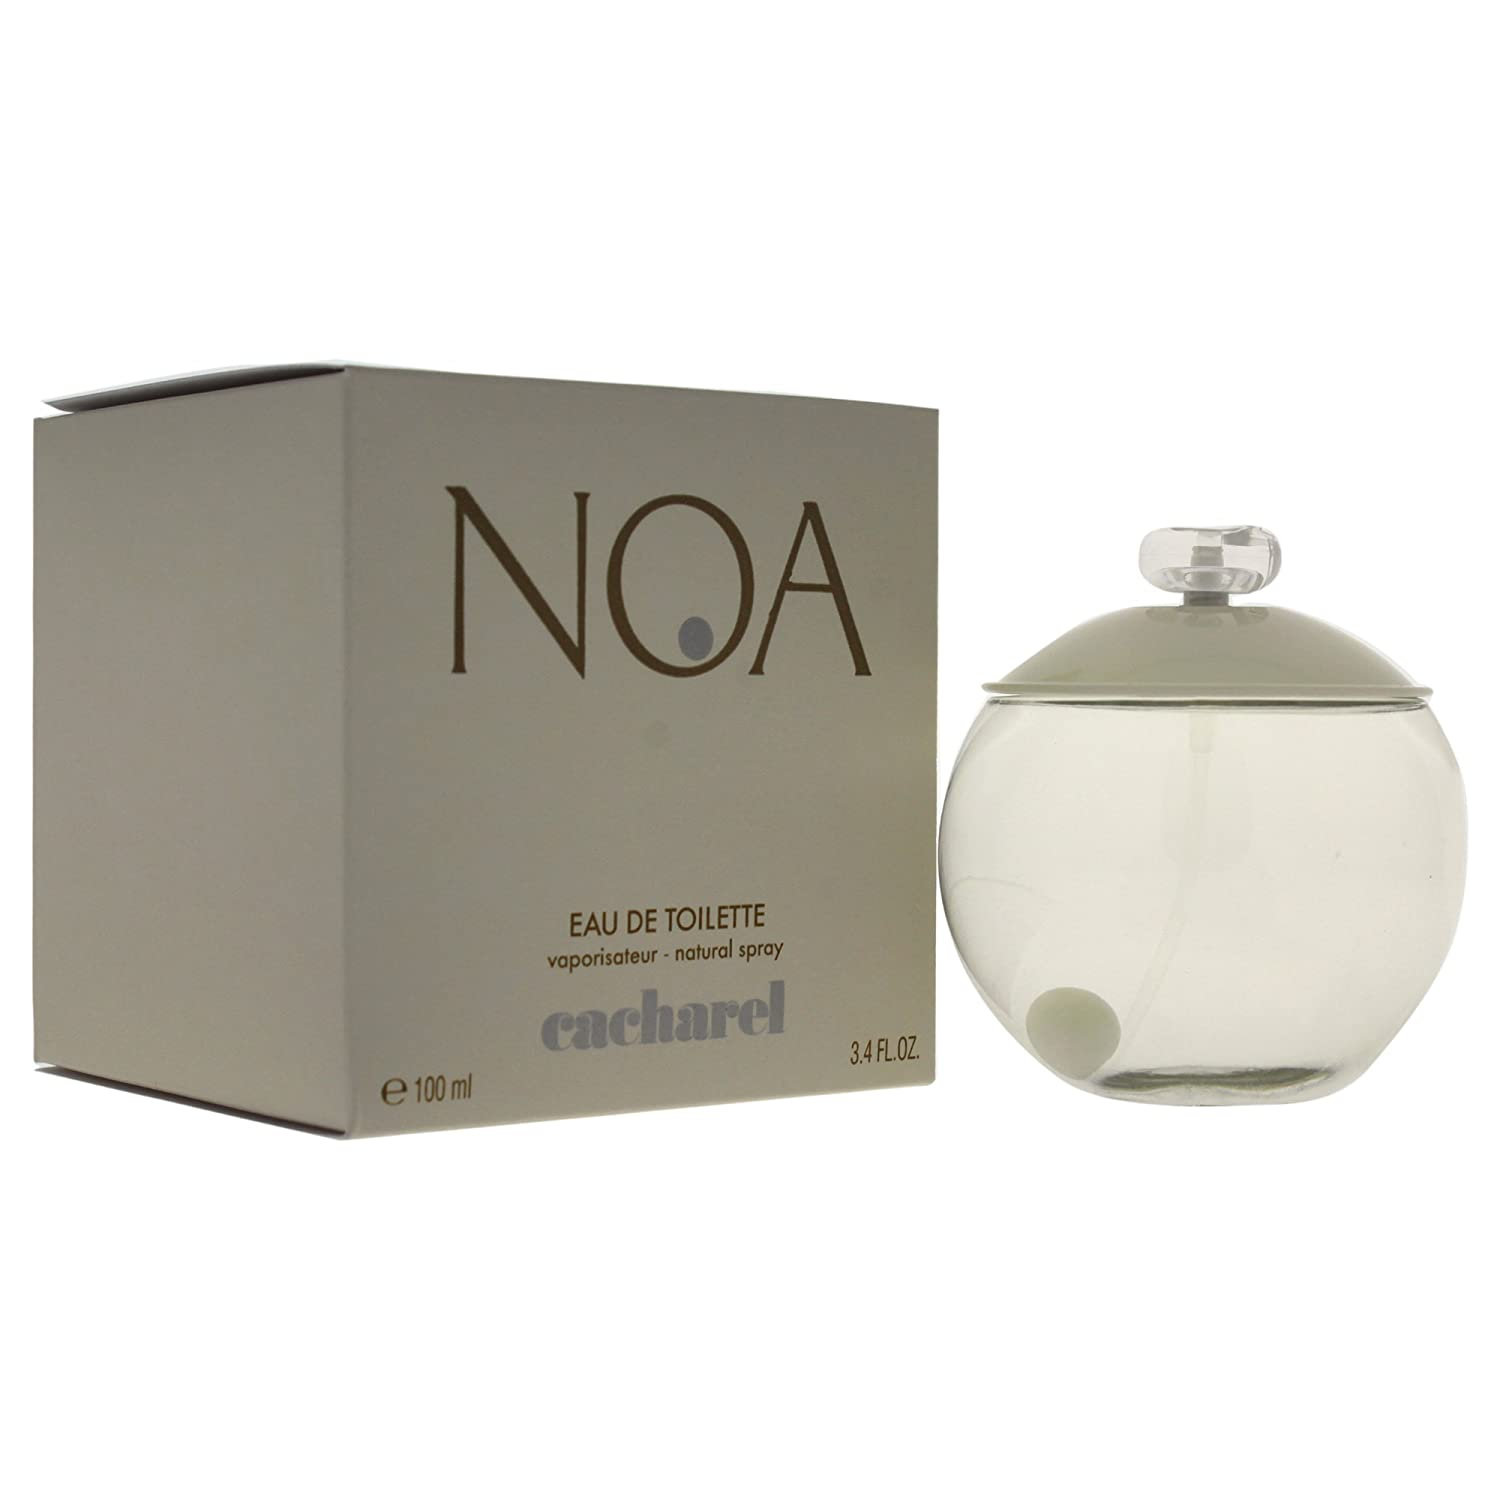 Cacharel Noa Eau de Toilette - 100 ml 123028 3360373016358_3360373016358